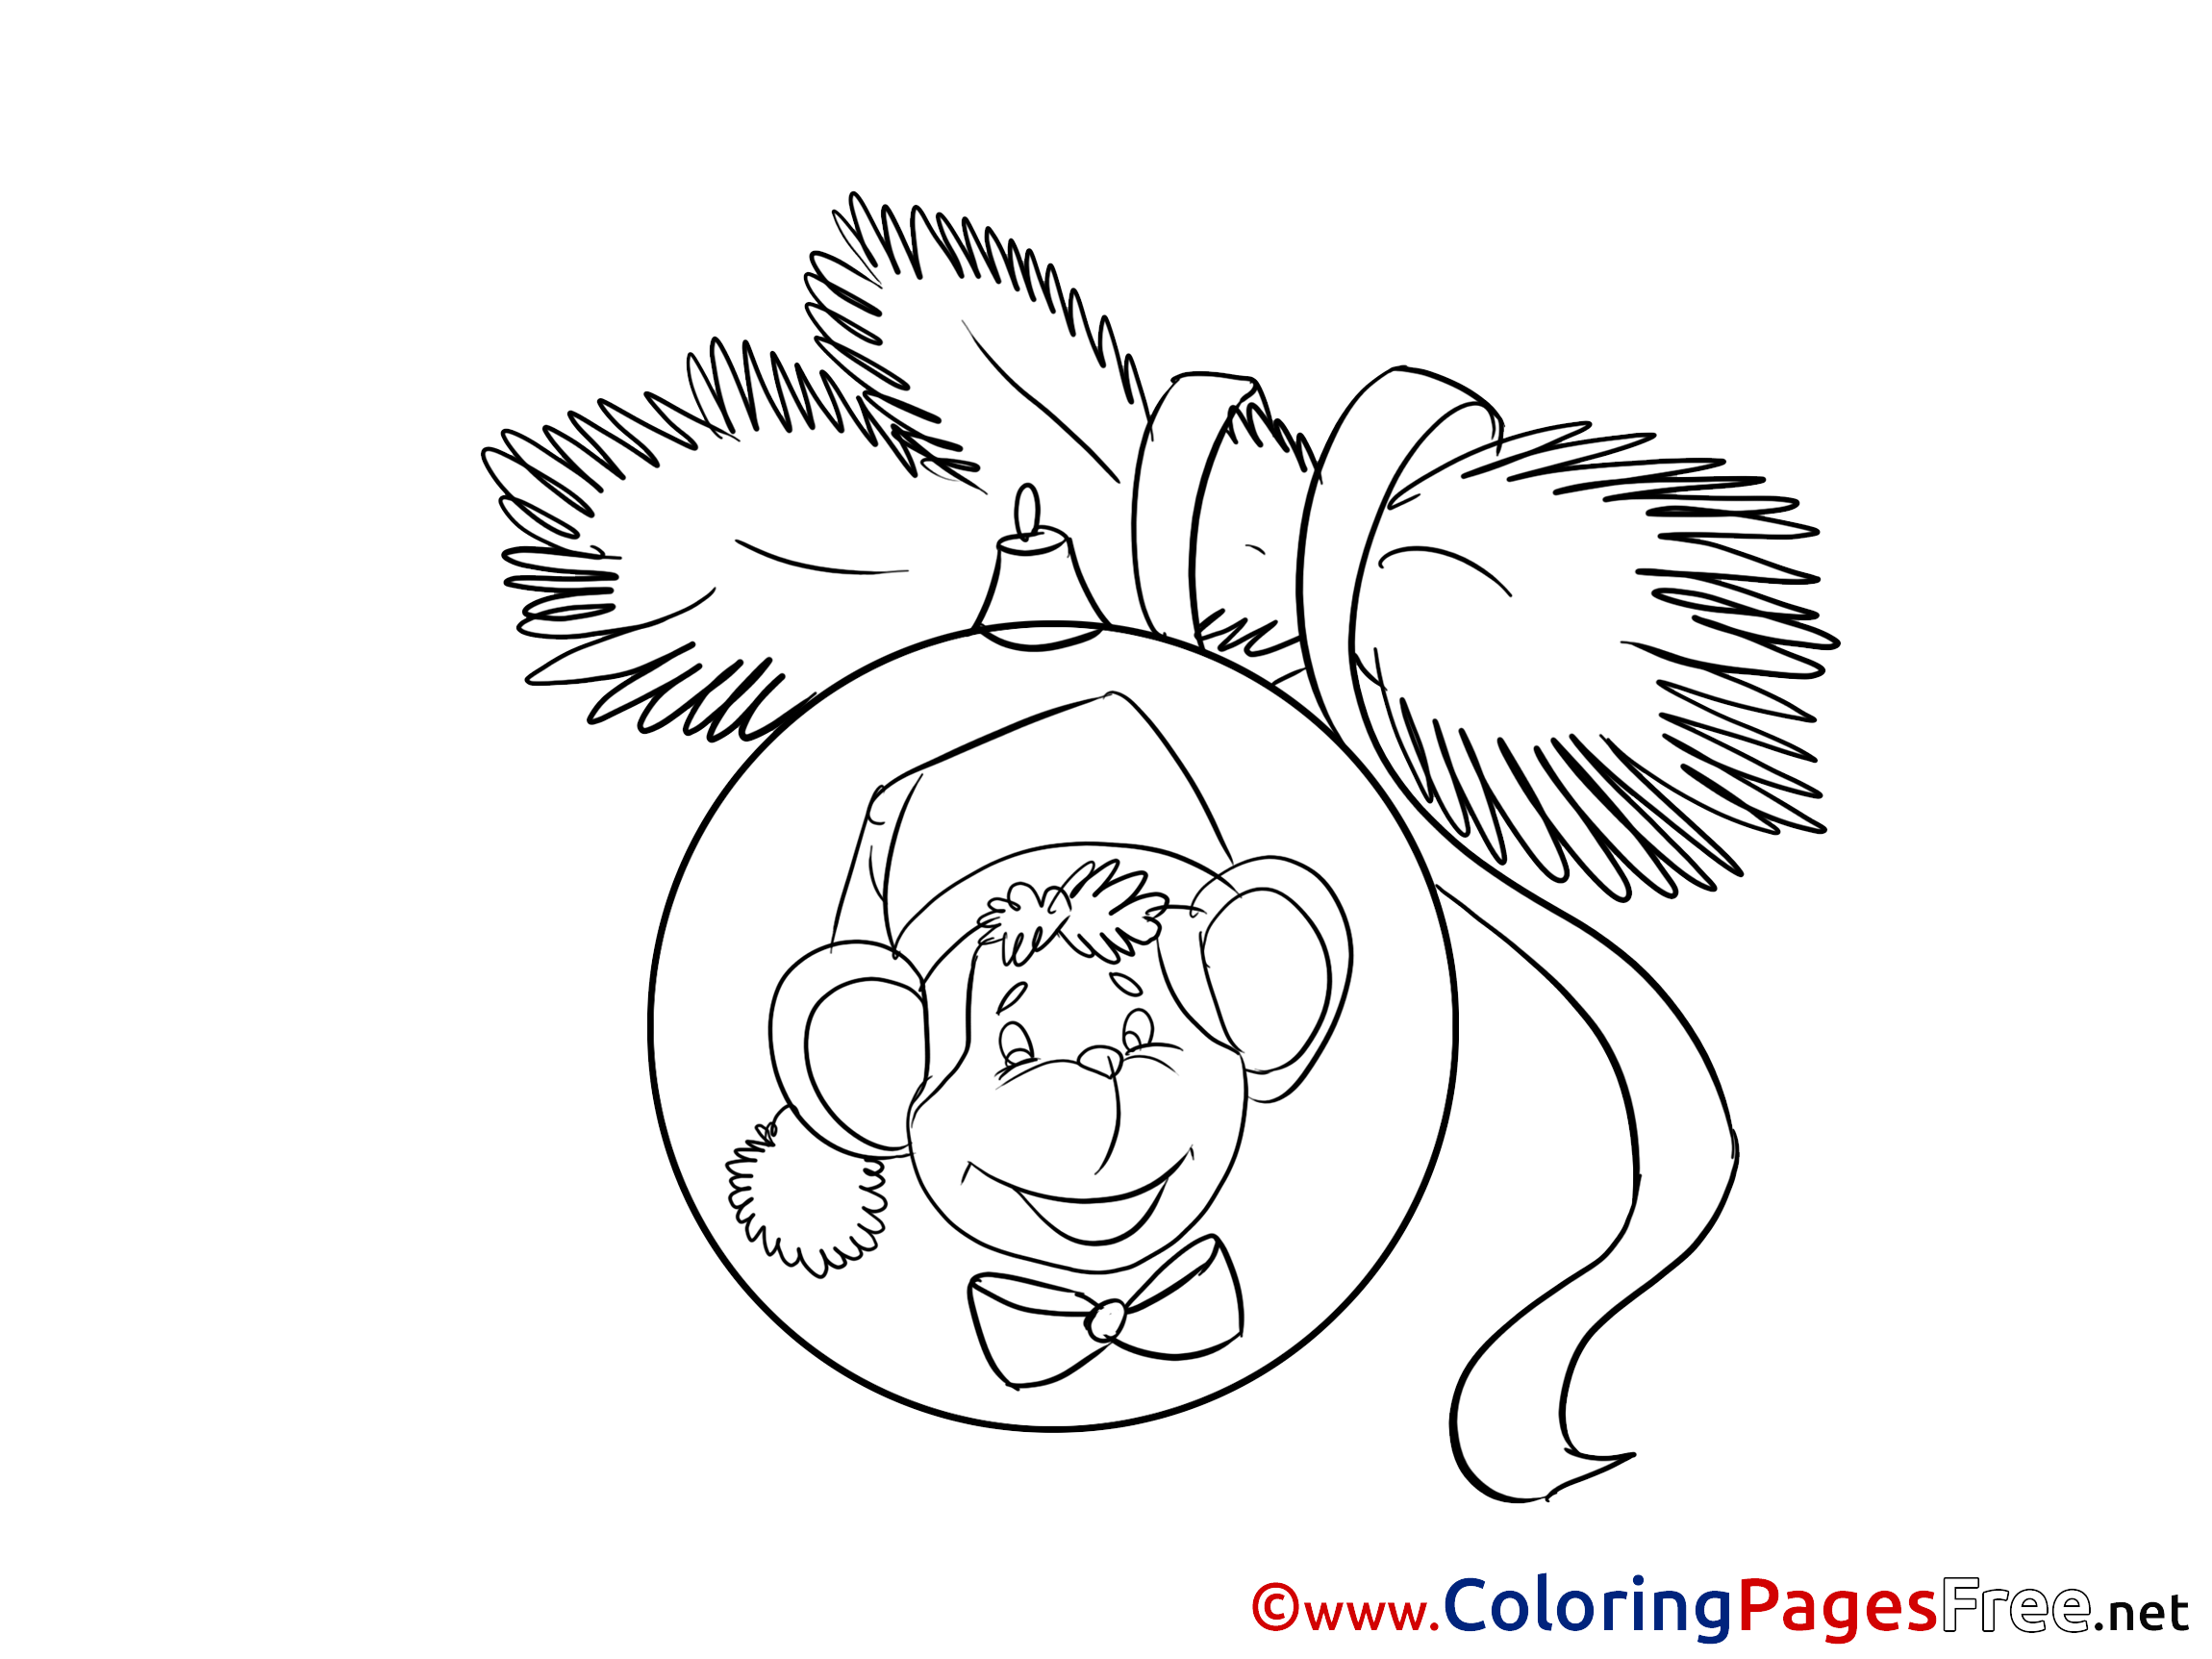 monkey christmas coloring pages - photo#21